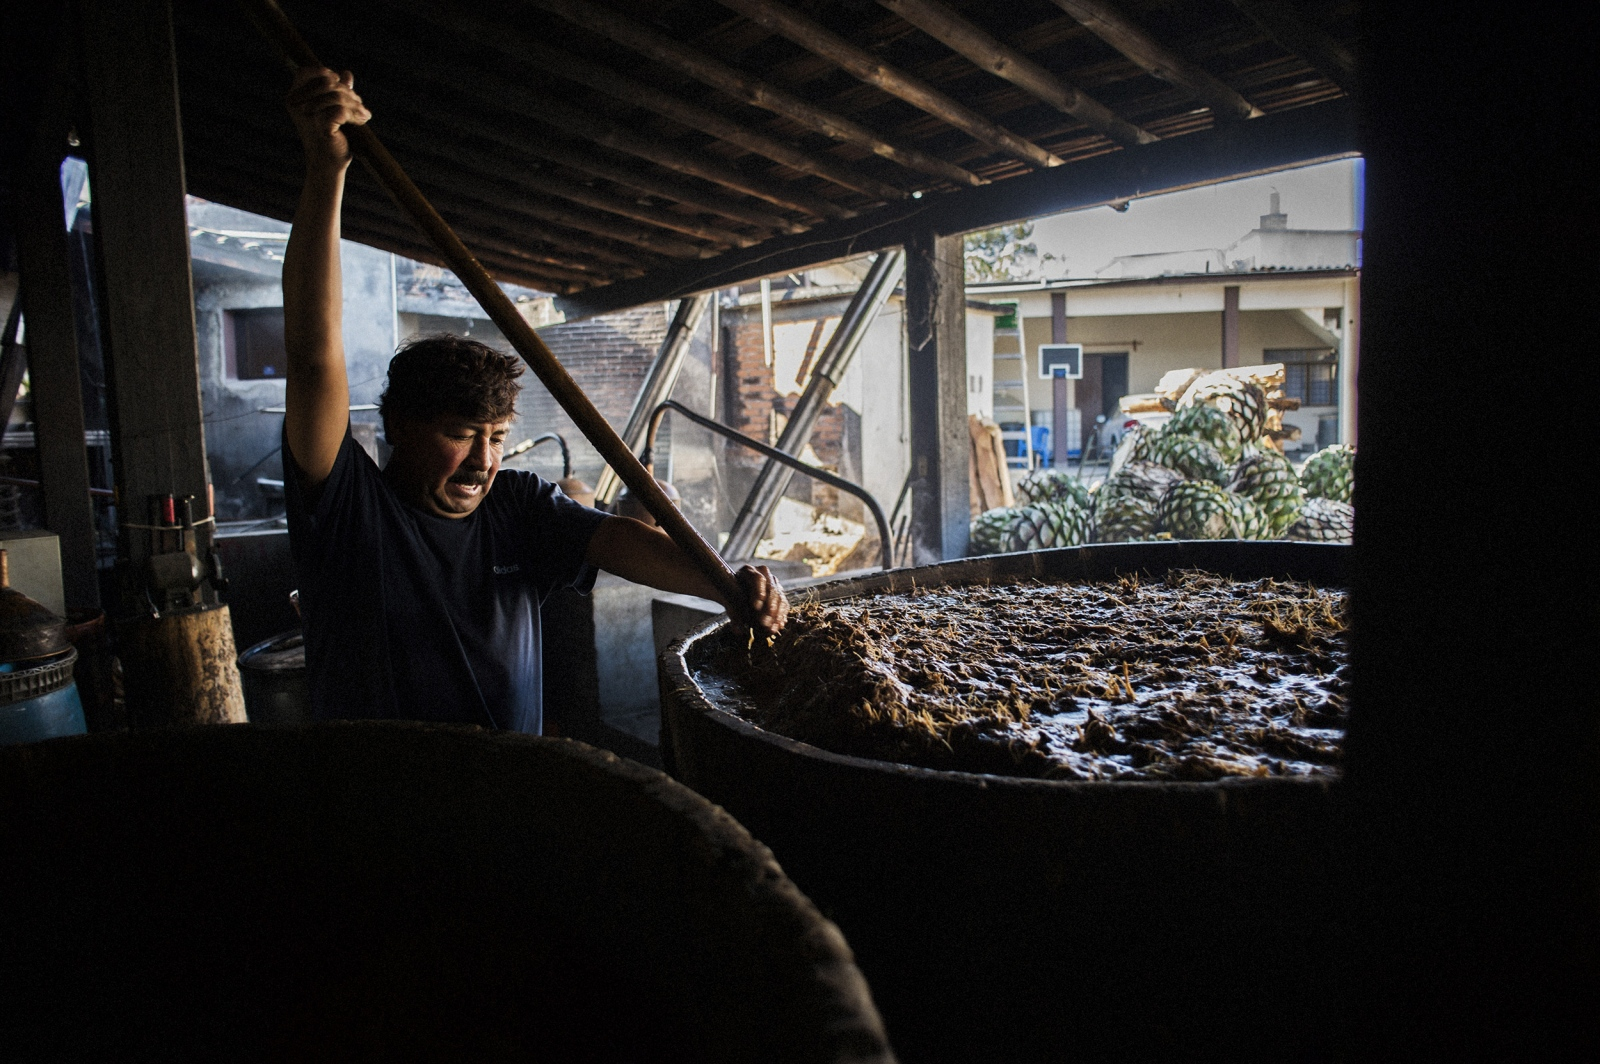 Master mezcalero Octavio Jiménez Monterroza stirs the agave mash, which will be fermented in wooden barrels for three to ten days before the juice is then separated out and distilled. The art of producing mezcal was passed down to Octavio from his father, Don Isaac, whose name adorns the family label.